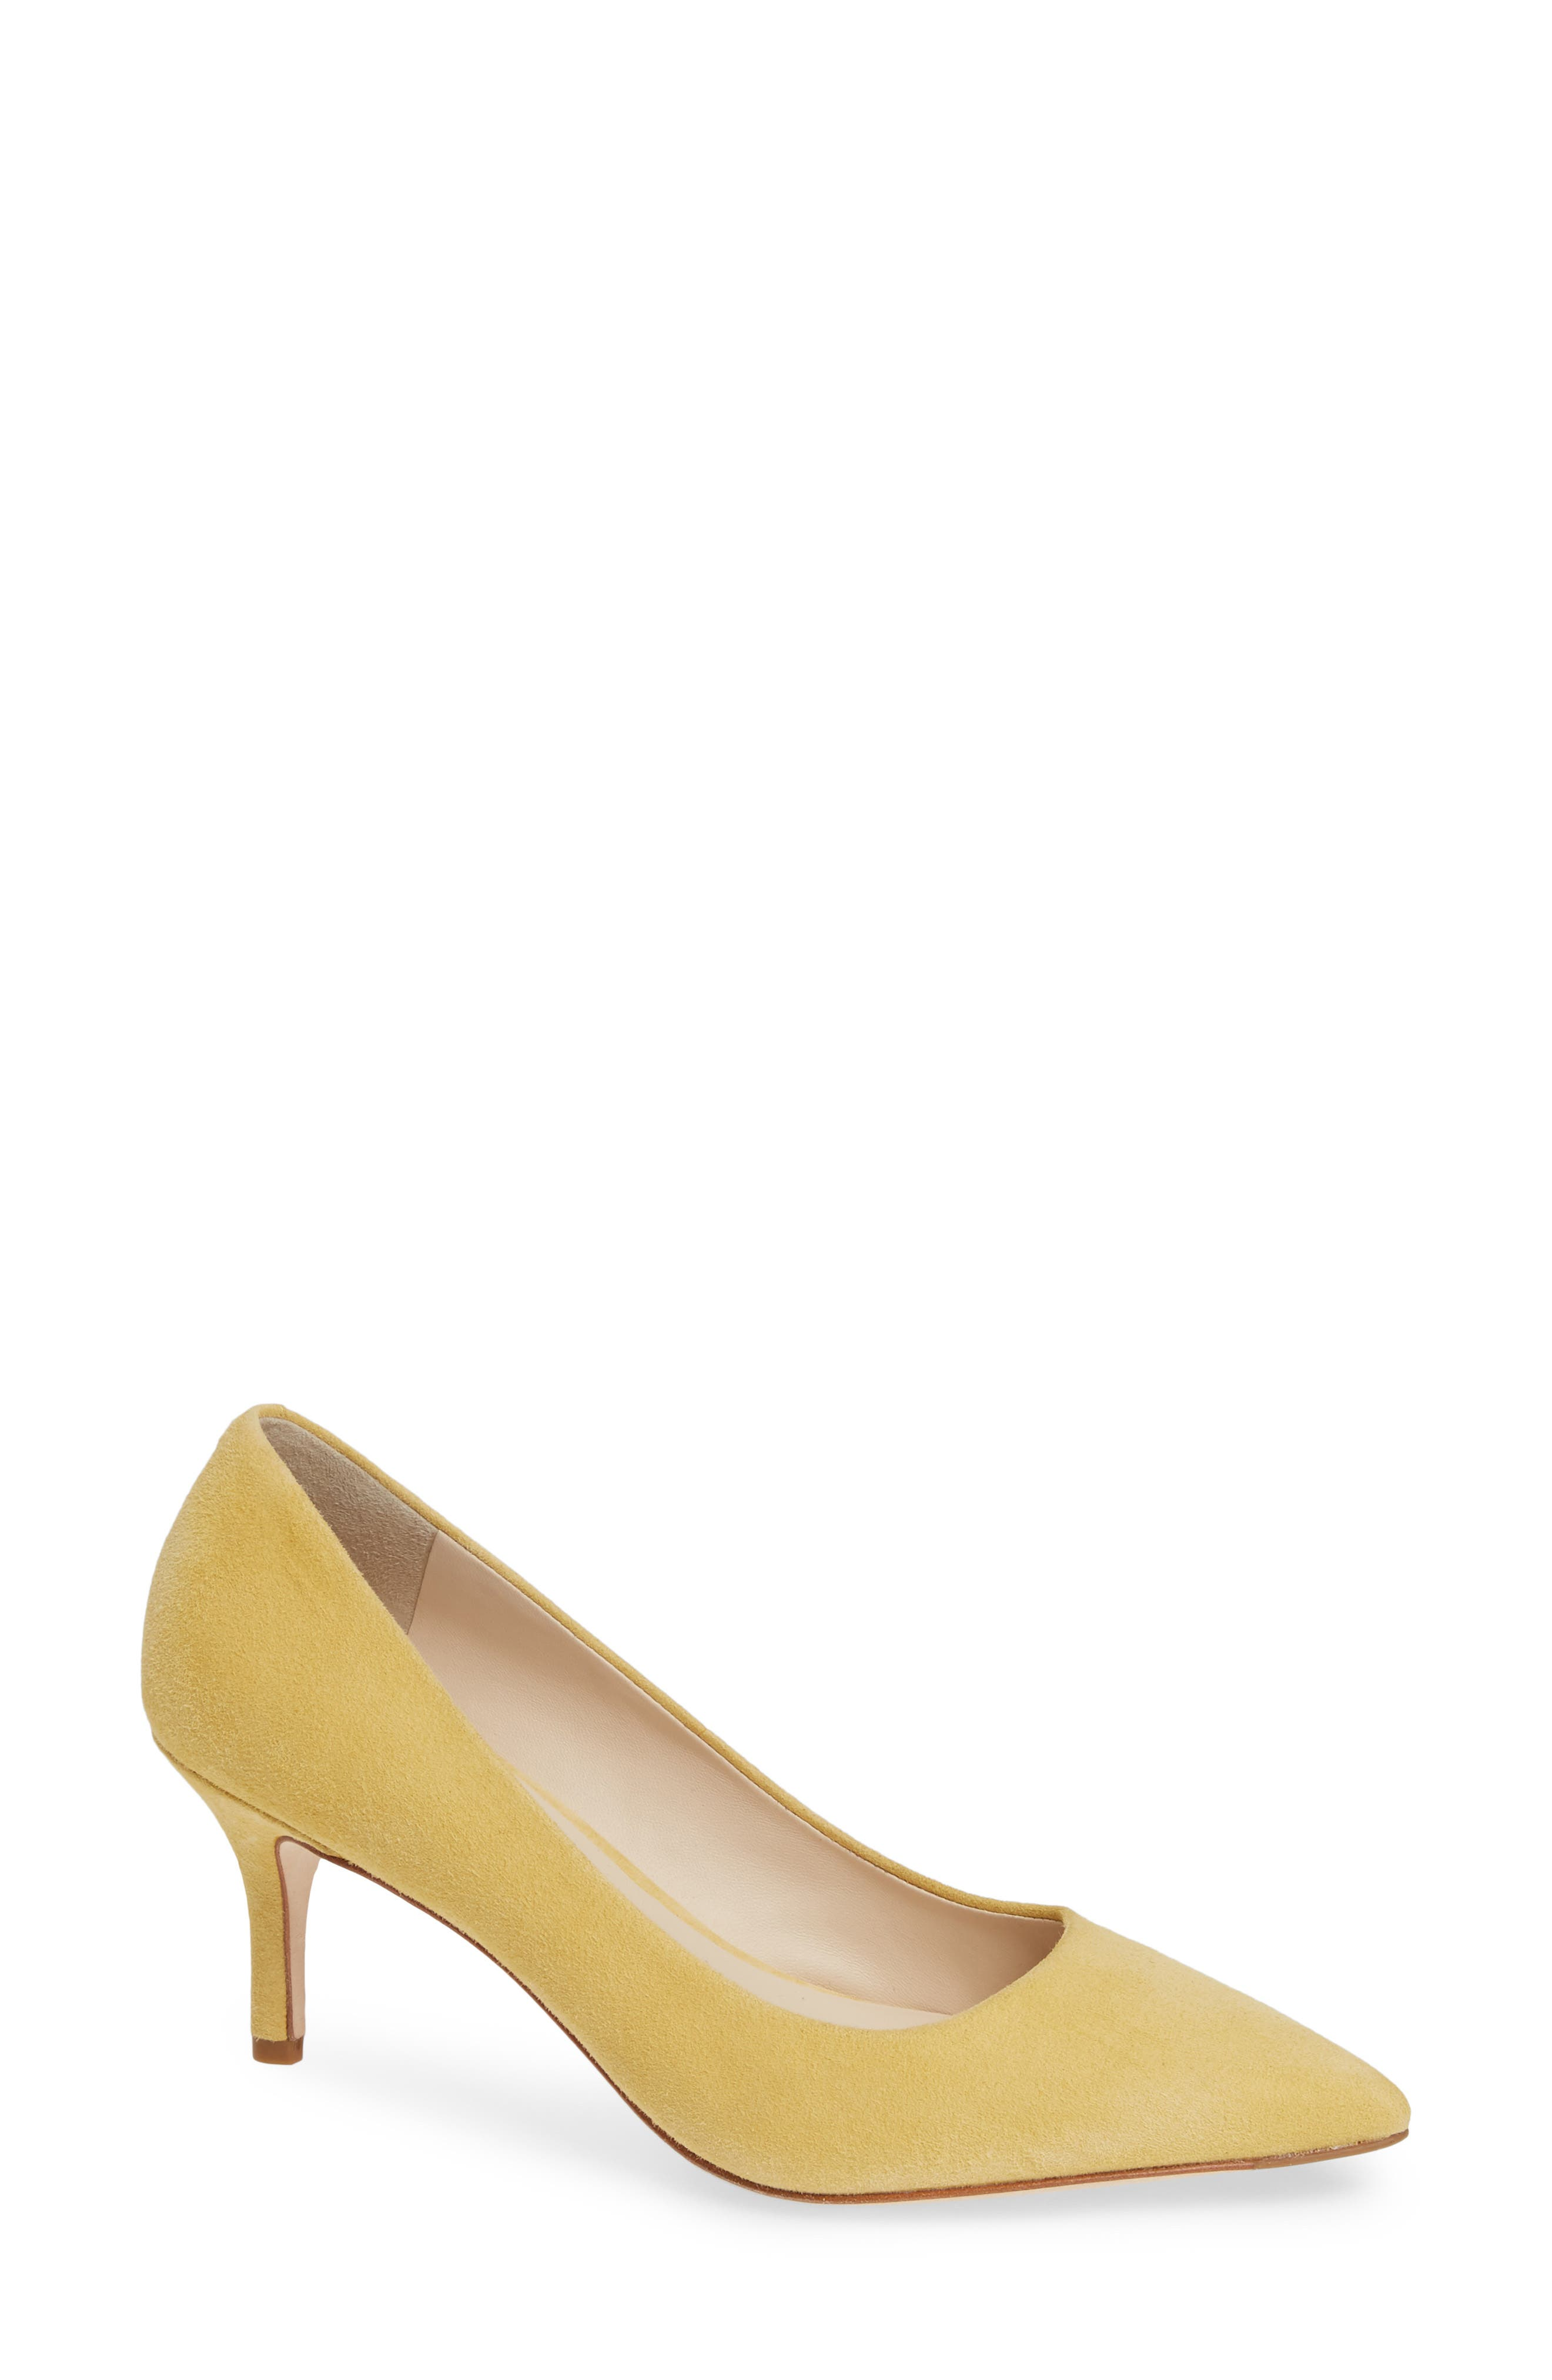 COLE HAAN Vesta Pointy Toe Pump, Main, color, SUNSET GOLD SUEDE